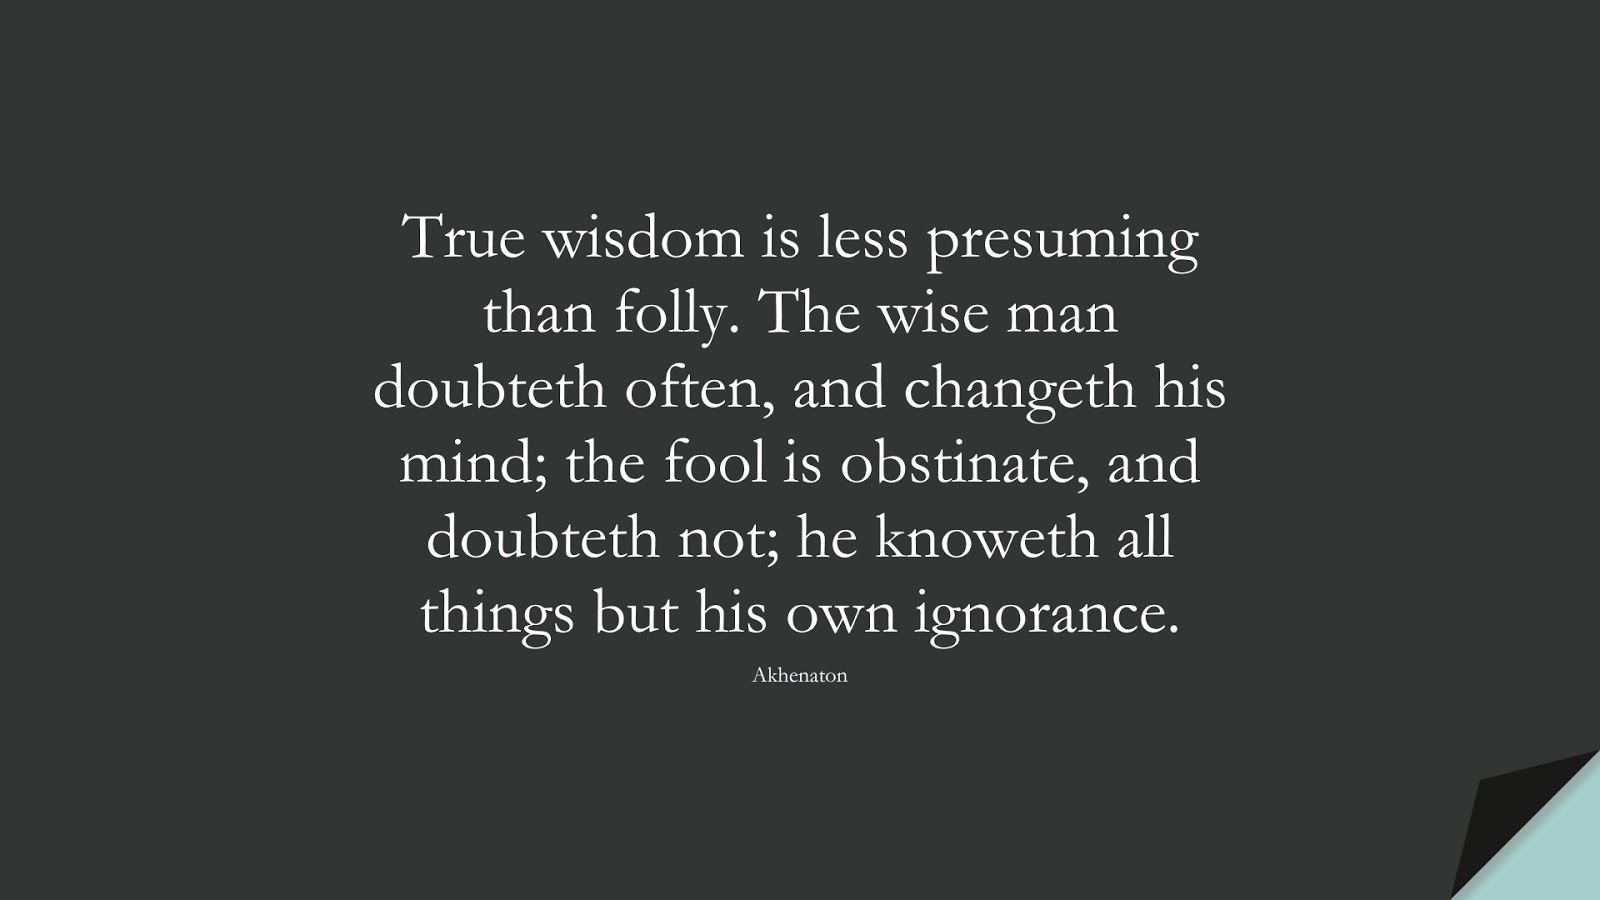 True wisdom is less presuming than folly. The wise man doubteth often, and changeth his mind; the fool is obstinate, and doubteth not; he knoweth all things but his own ignorance. (Akhenaton);  #WordsofWisdom